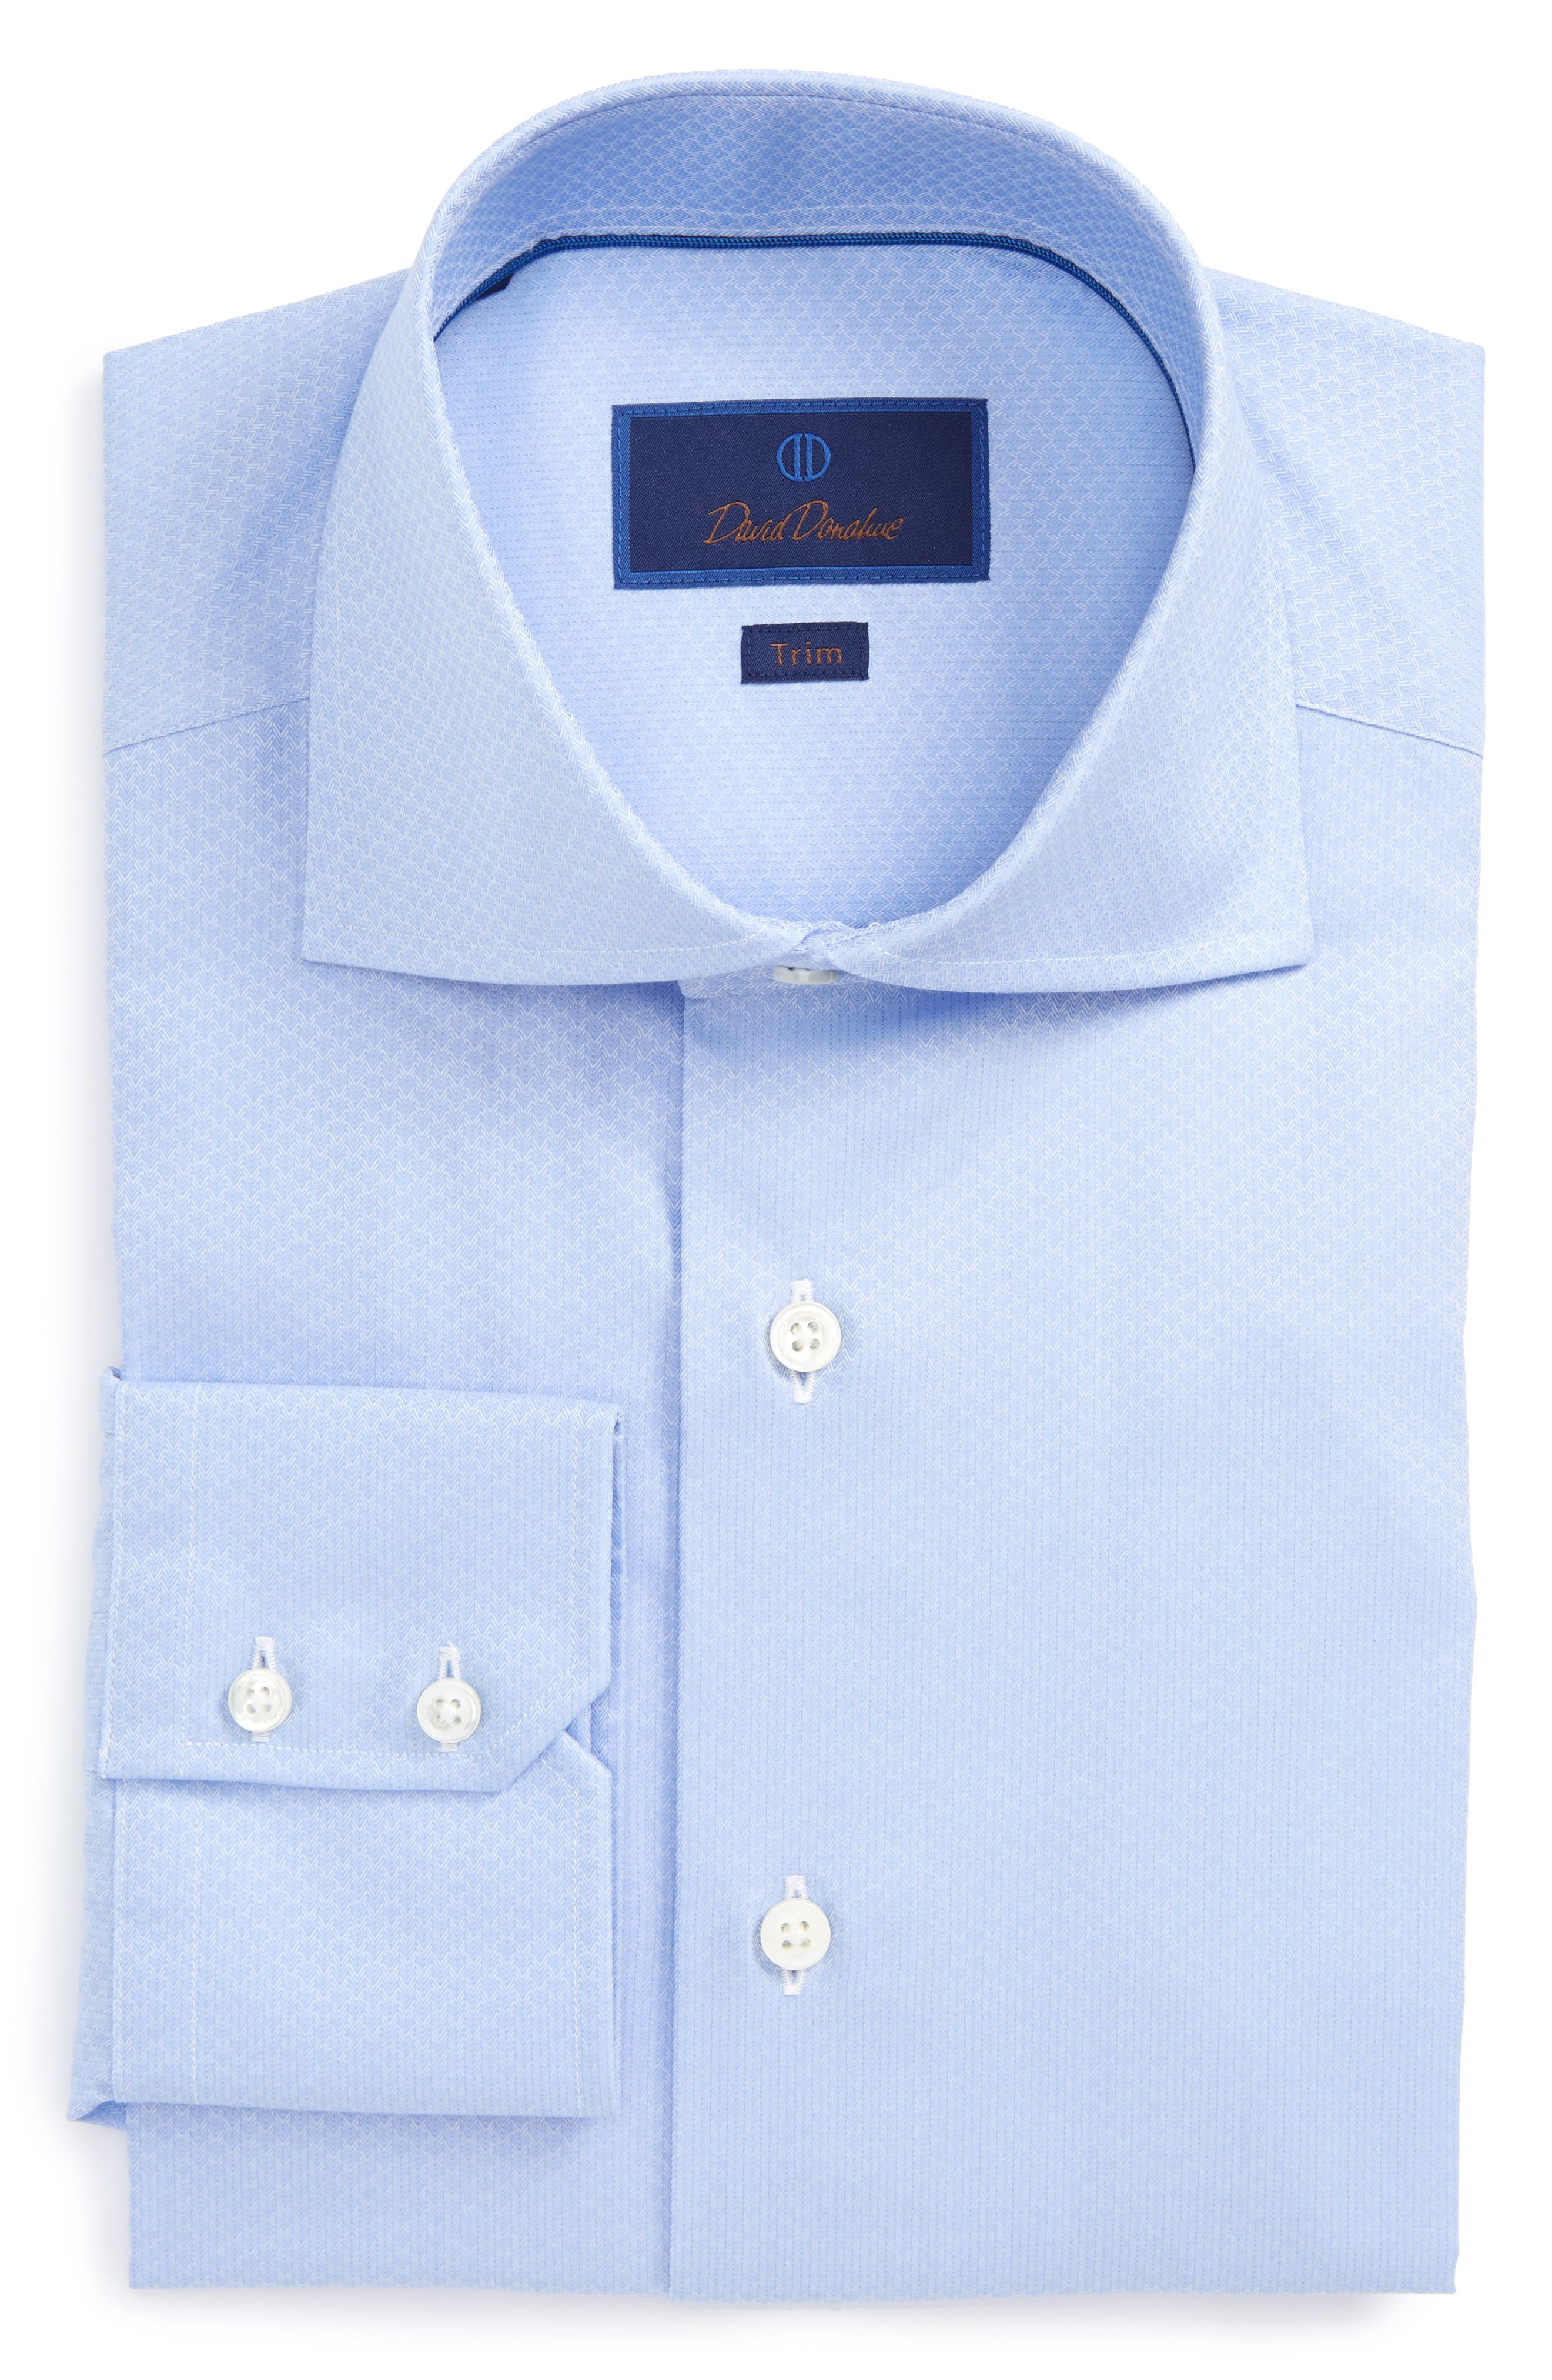 Alternate Image 1 Selected - David Donahue Trim Fit Herringbone Weave Dress Shirt